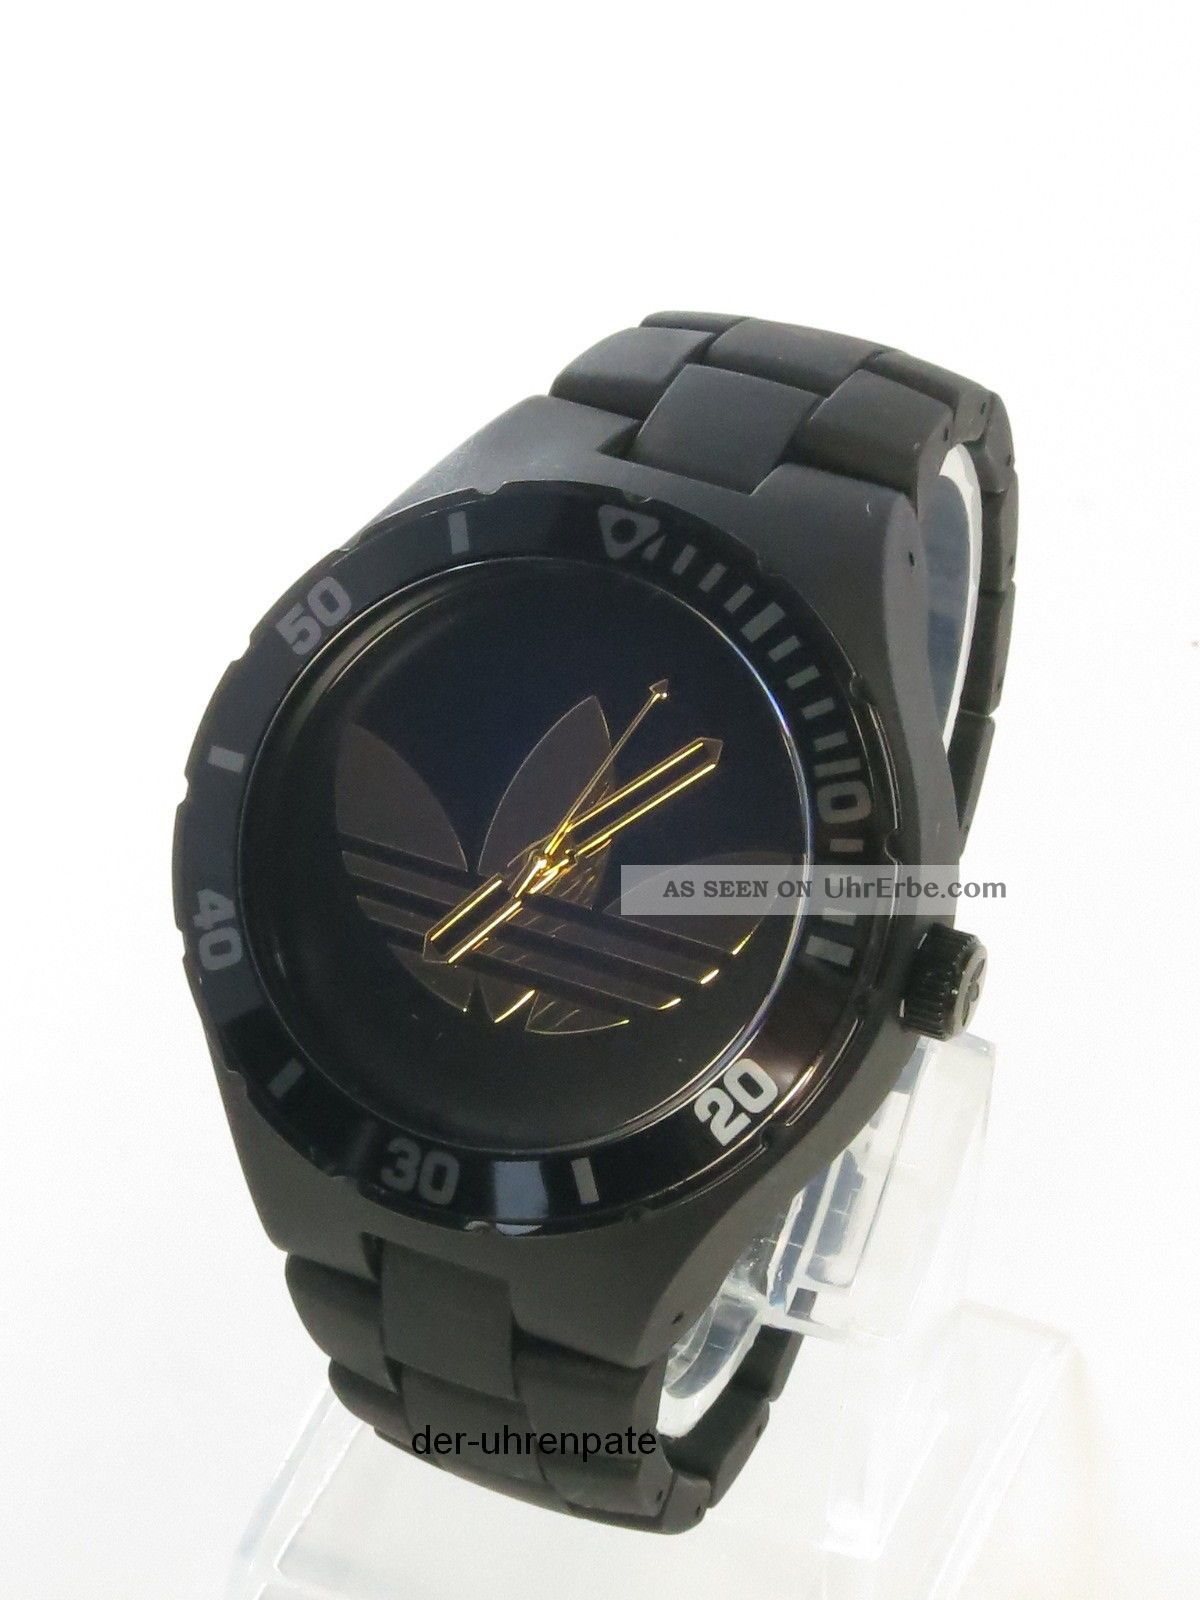 adidas herrenuhr uhr nylon armband cambridge schwarz. Black Bedroom Furniture Sets. Home Design Ideas